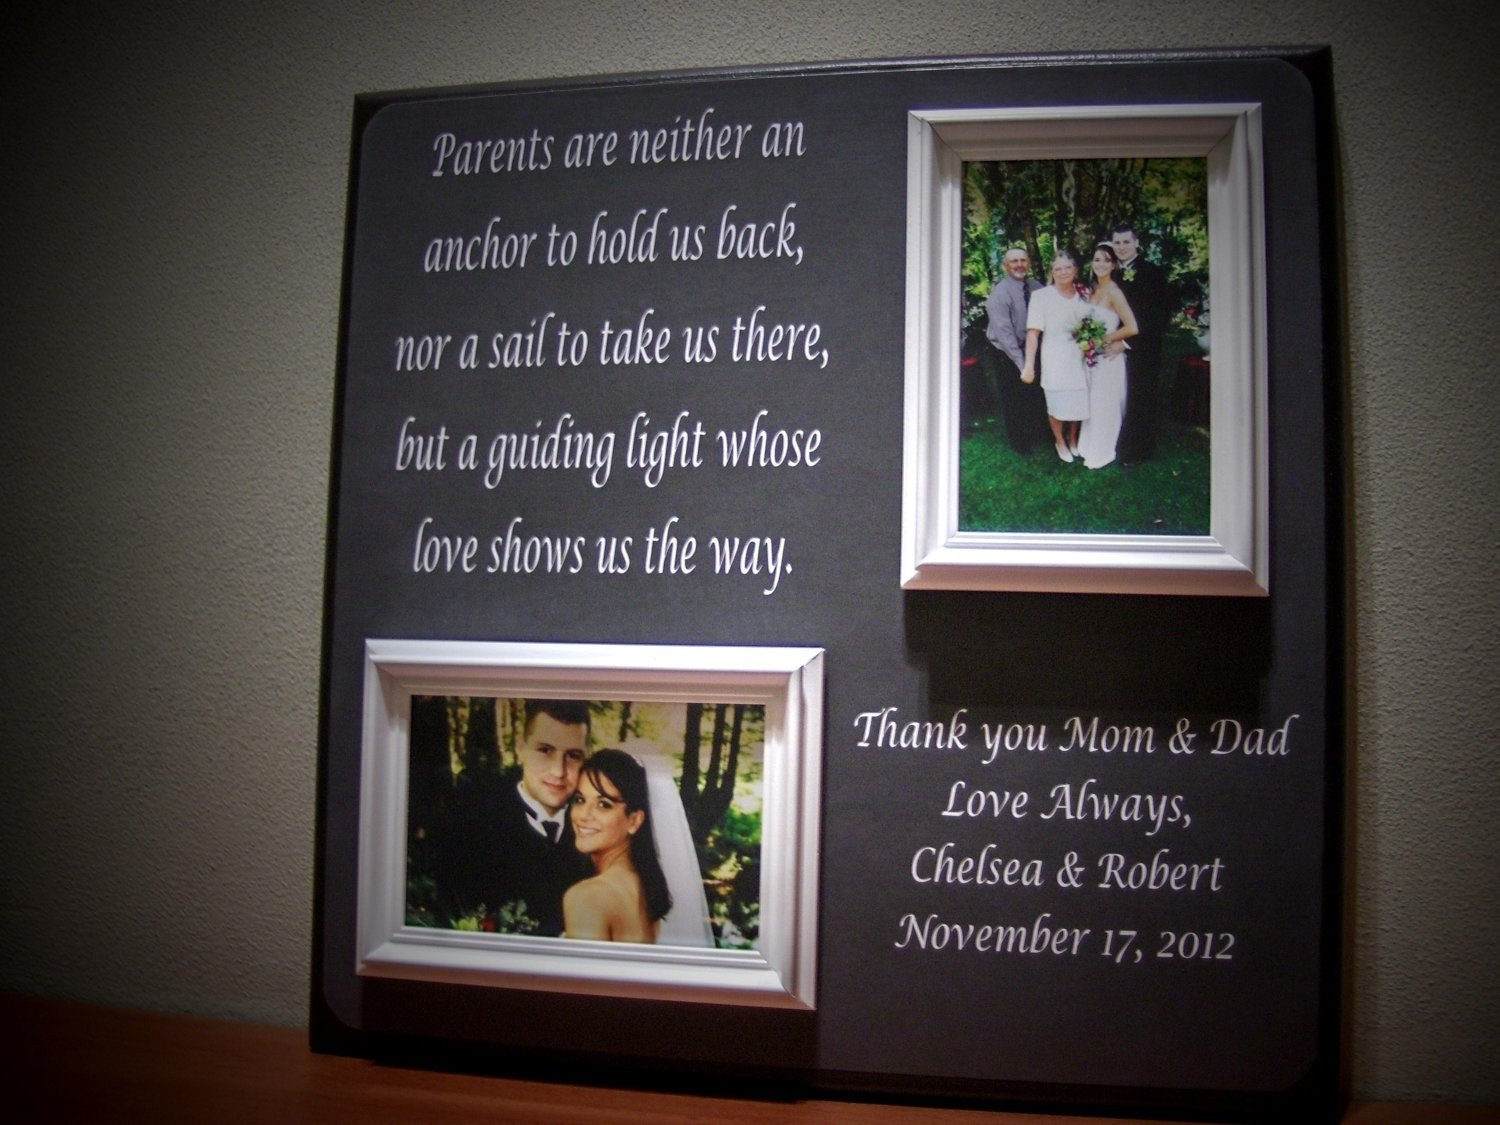 10 Stylish Thank You Gift Ideas For Parents wedding thank you gifts for parents ideas elegant weding wedding 2 2020